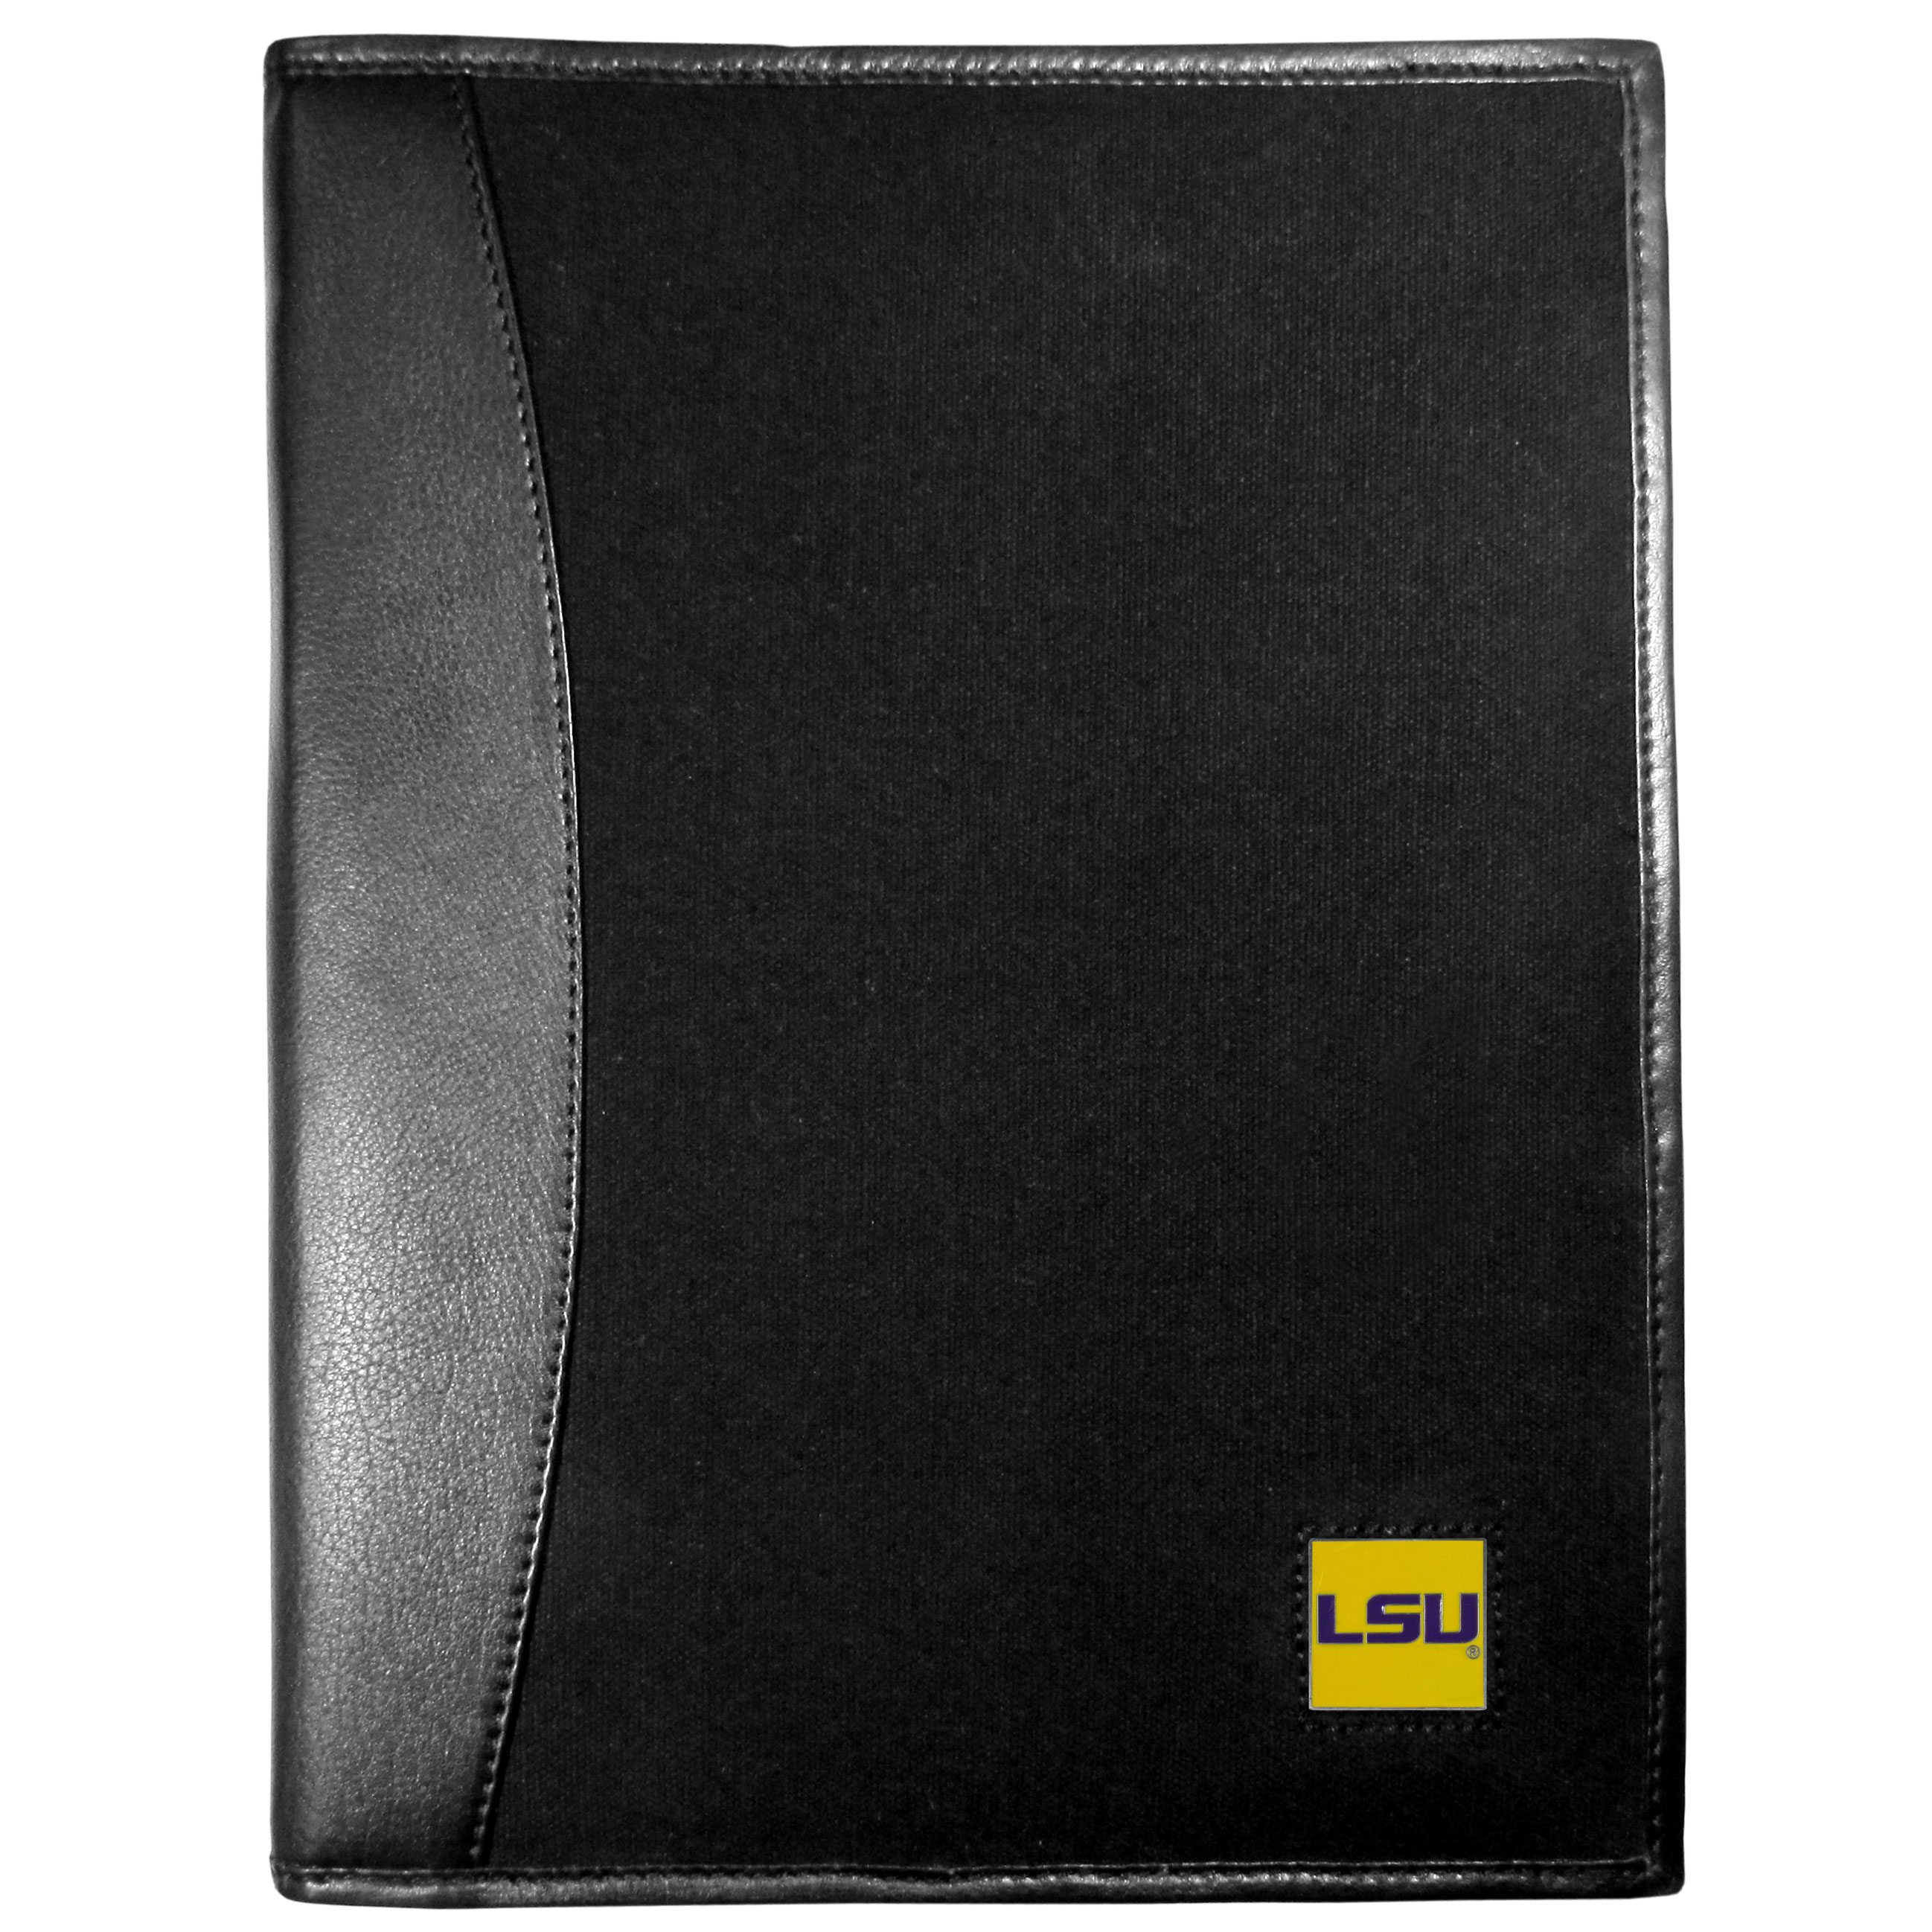 LSU Tigers Leather and Canvas Padfolio - Our leather and canvas padfolio perfectly blends form and function. The attractive portfolio is bound in fine grain leather with an attractive canvas finish and the interior is a soft nylon. This high quality business accessory also features a fully cast metal LSU Tigers emblem that is subtly set in the corner of the organizer. It is packed with features like 6 card slots for badges, business cards, hotel keys or credit cards and ID with a large pocket for loose papers and a writing tablet slot making it a must-have for the professional on the go.